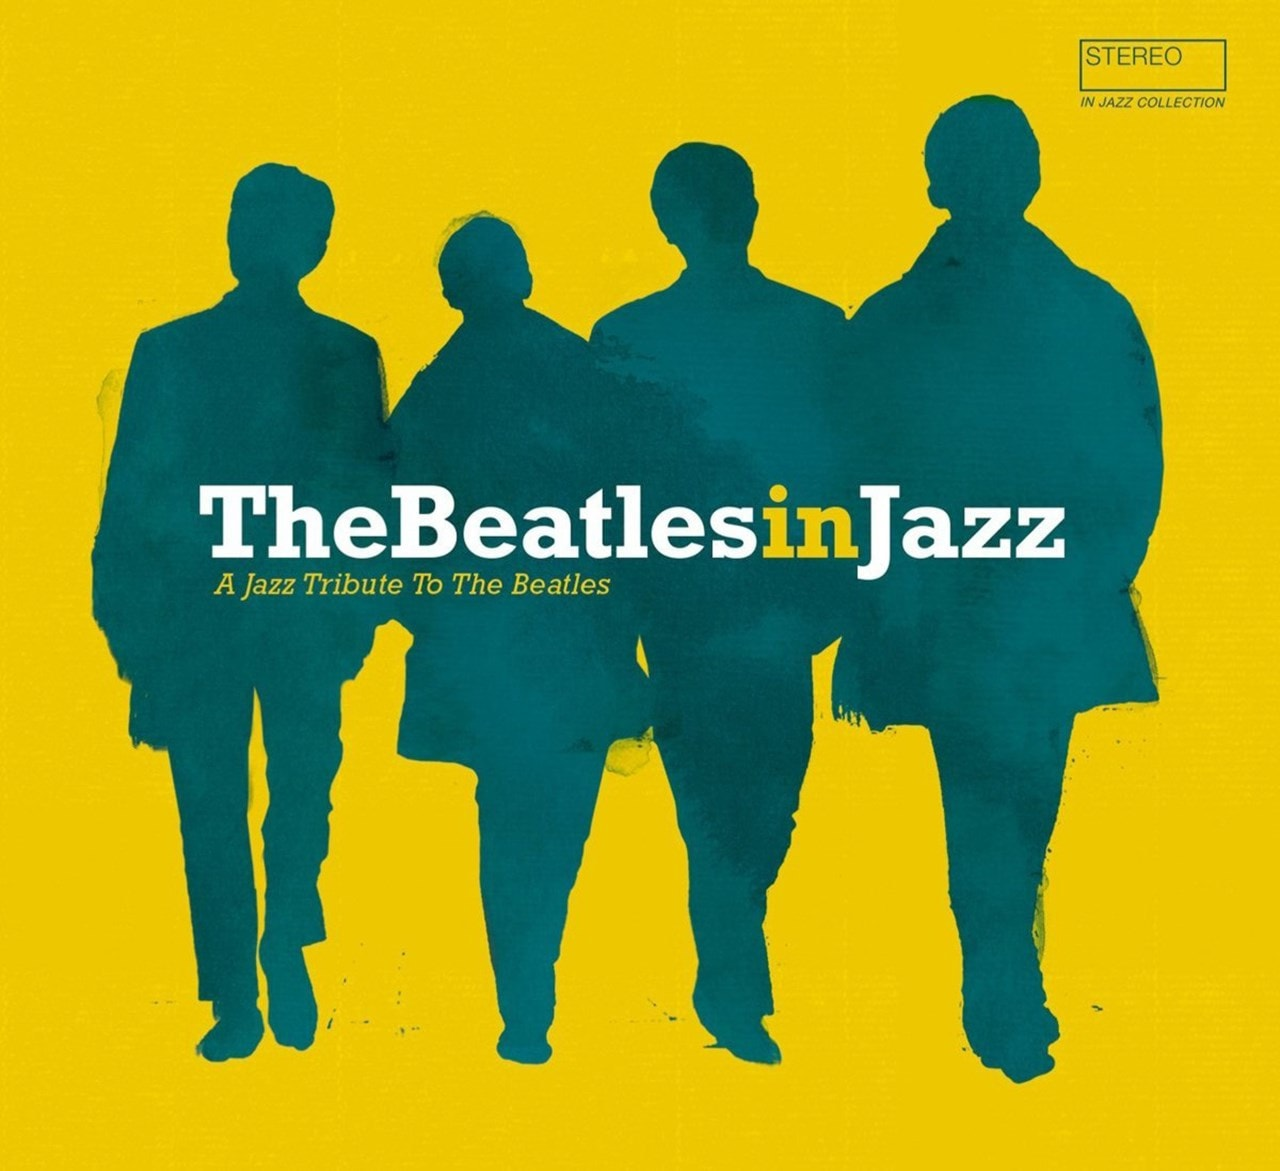 The Beatles in Jazz - 1